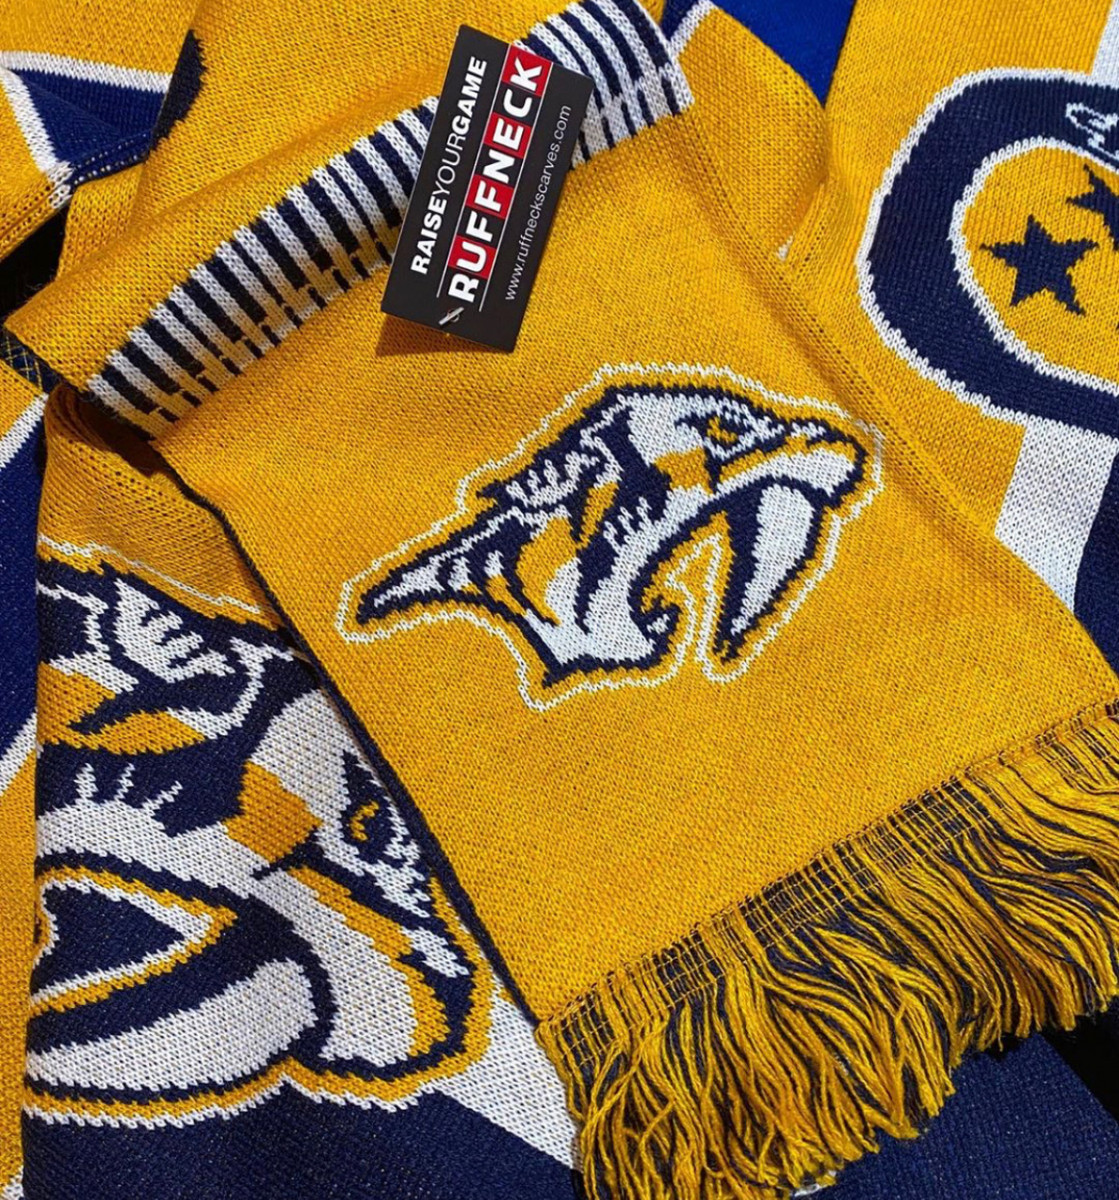 Sports scarves